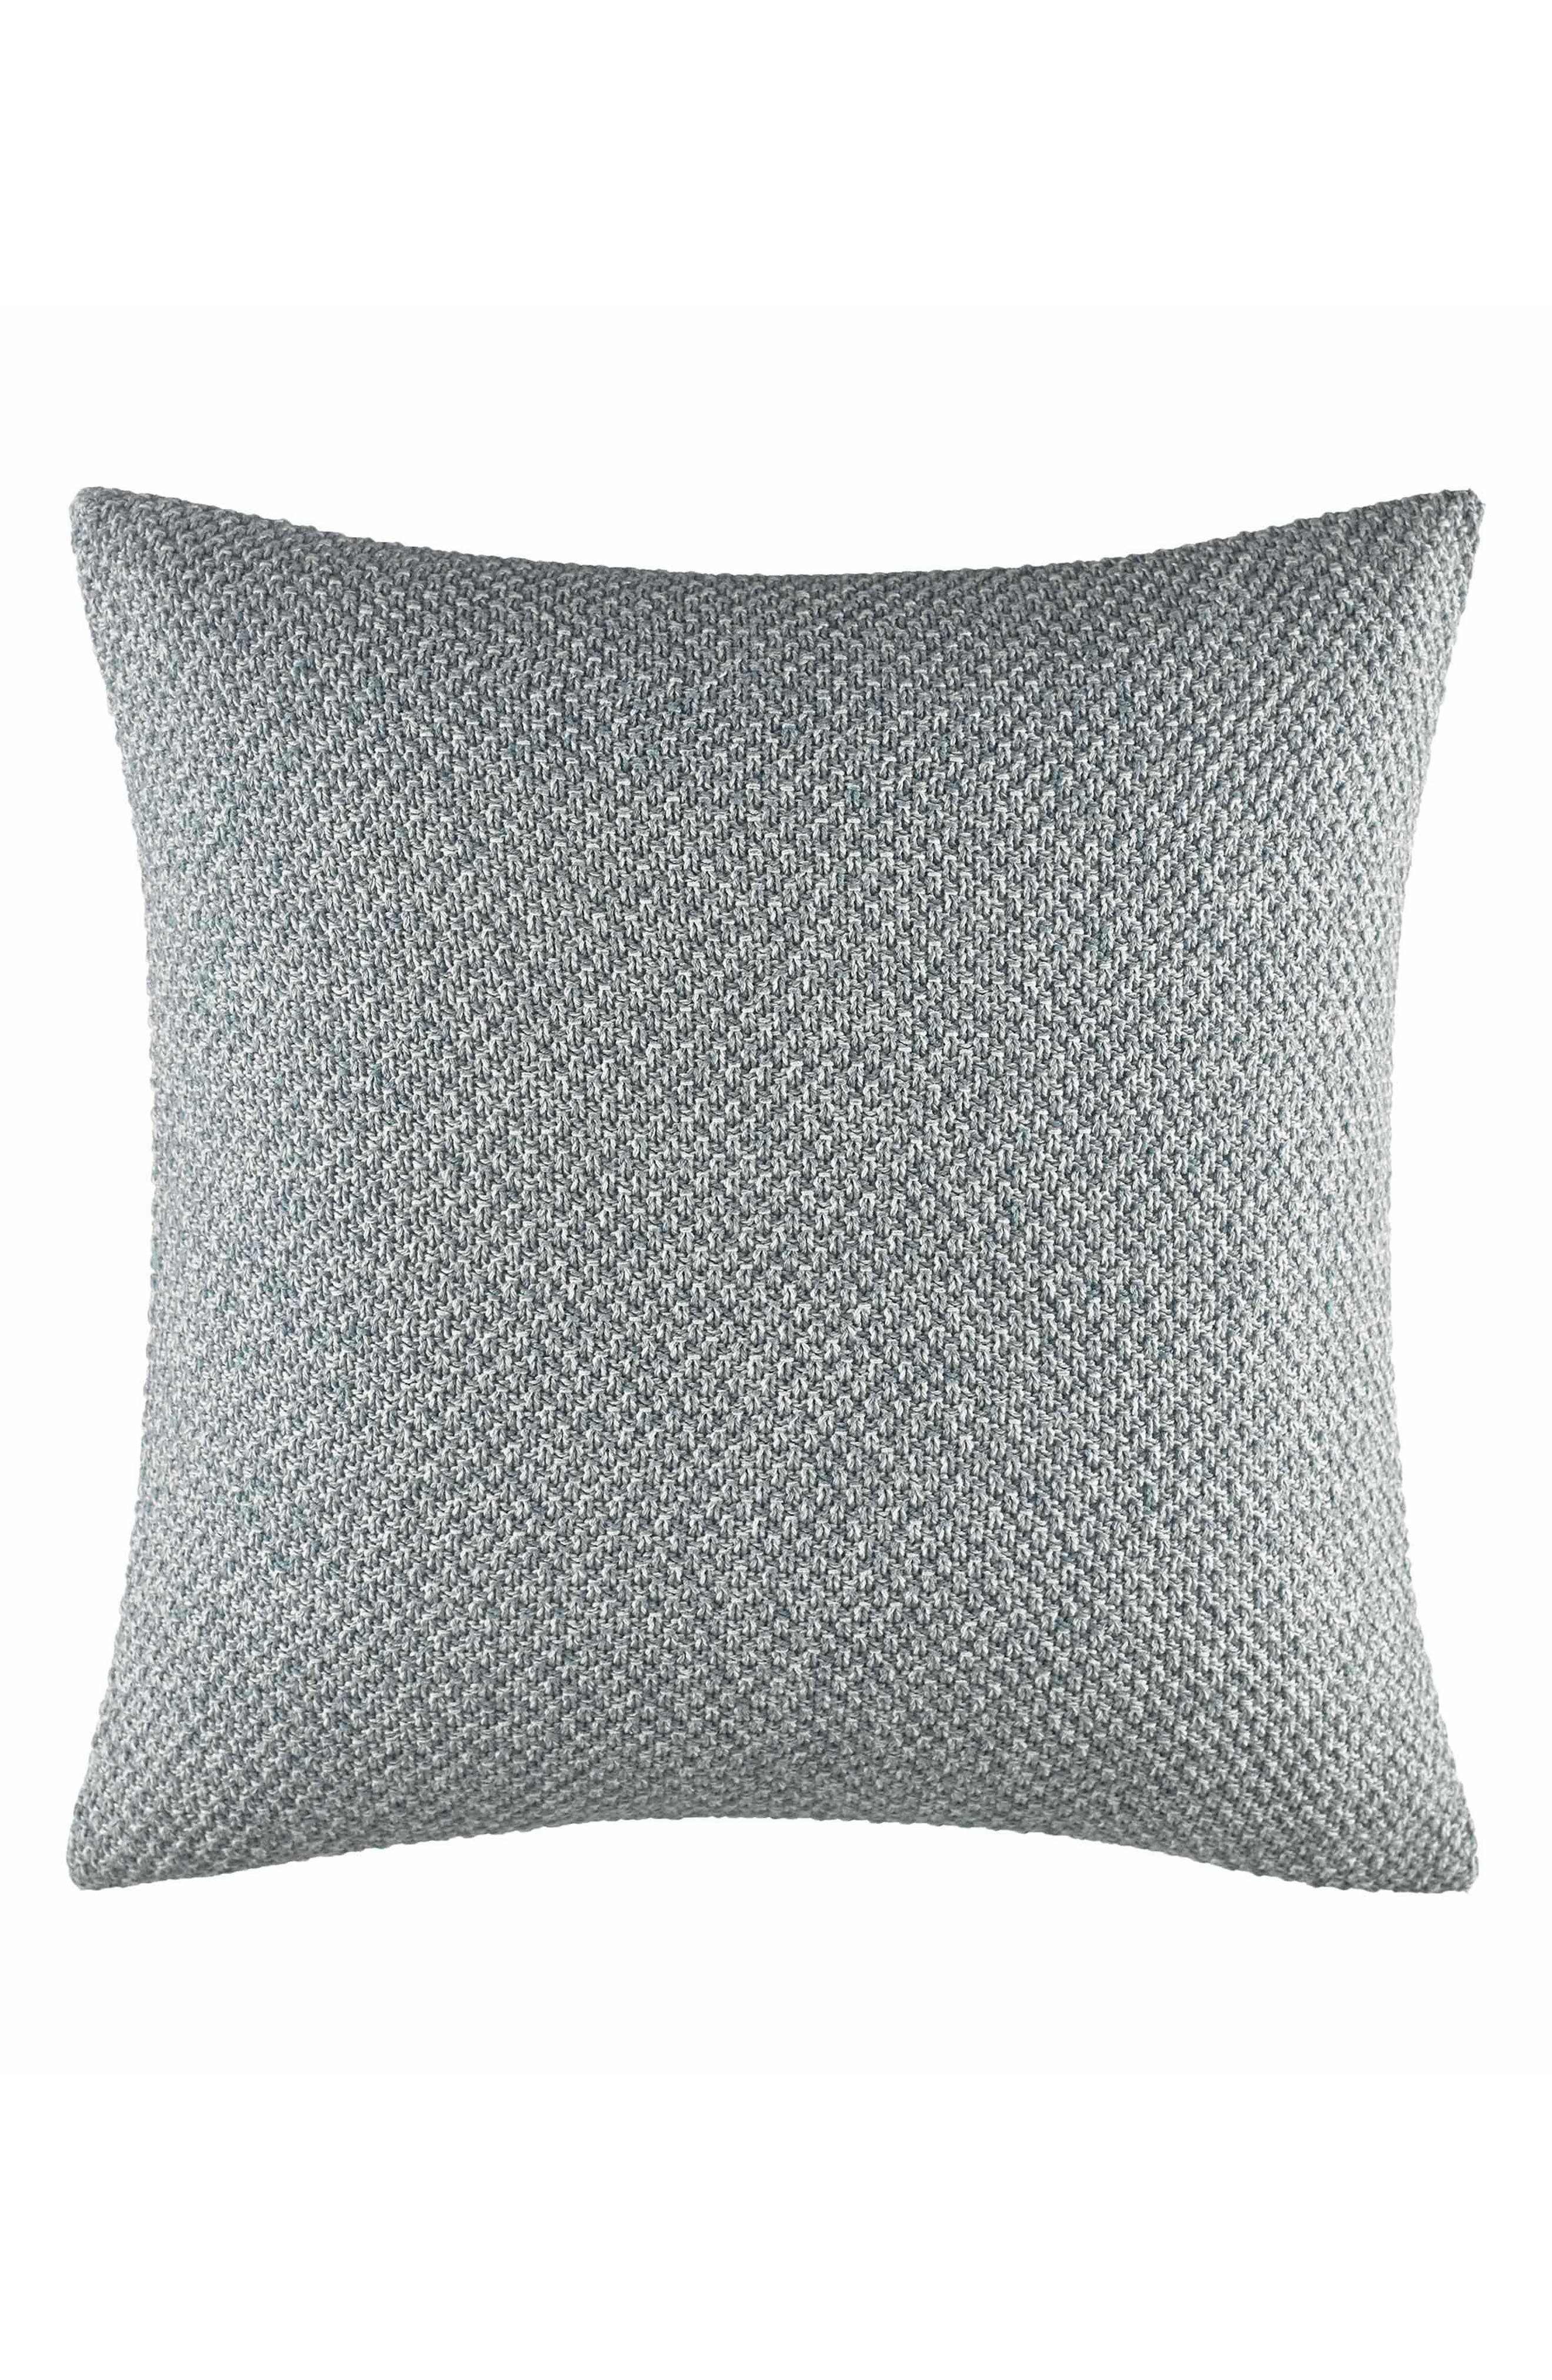 Alternate Image 1 Selected - Nautica Cape Coral Knit Pillow